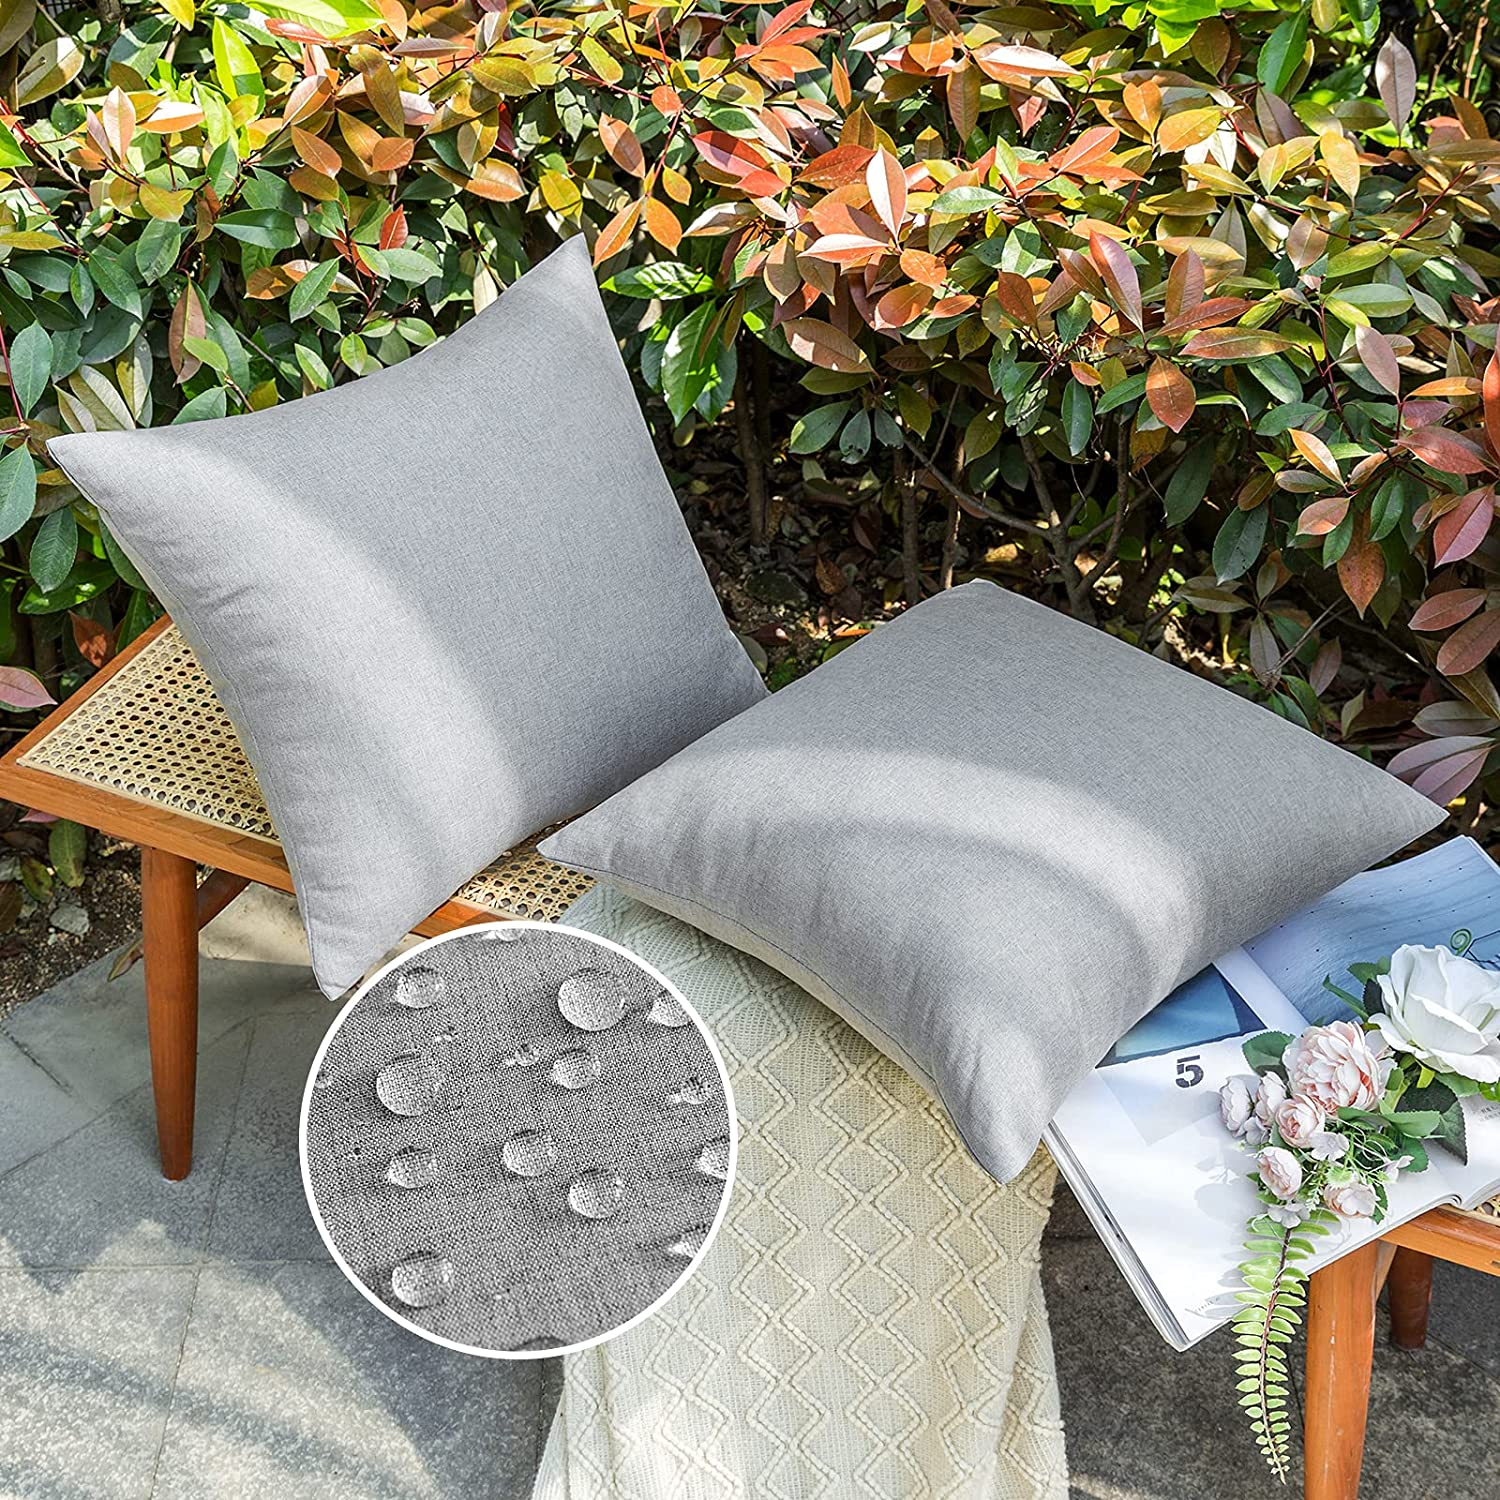 EMEMA Outdoor Waterproof Throw Pillow Covers Polyester Water Resistant Garden Decorative Cushion Cases Farmhouse for Patio Sofa Couch Bed Balcony Chairs 20x20 Inch 50x50 cm Light Gray, Pack of 2